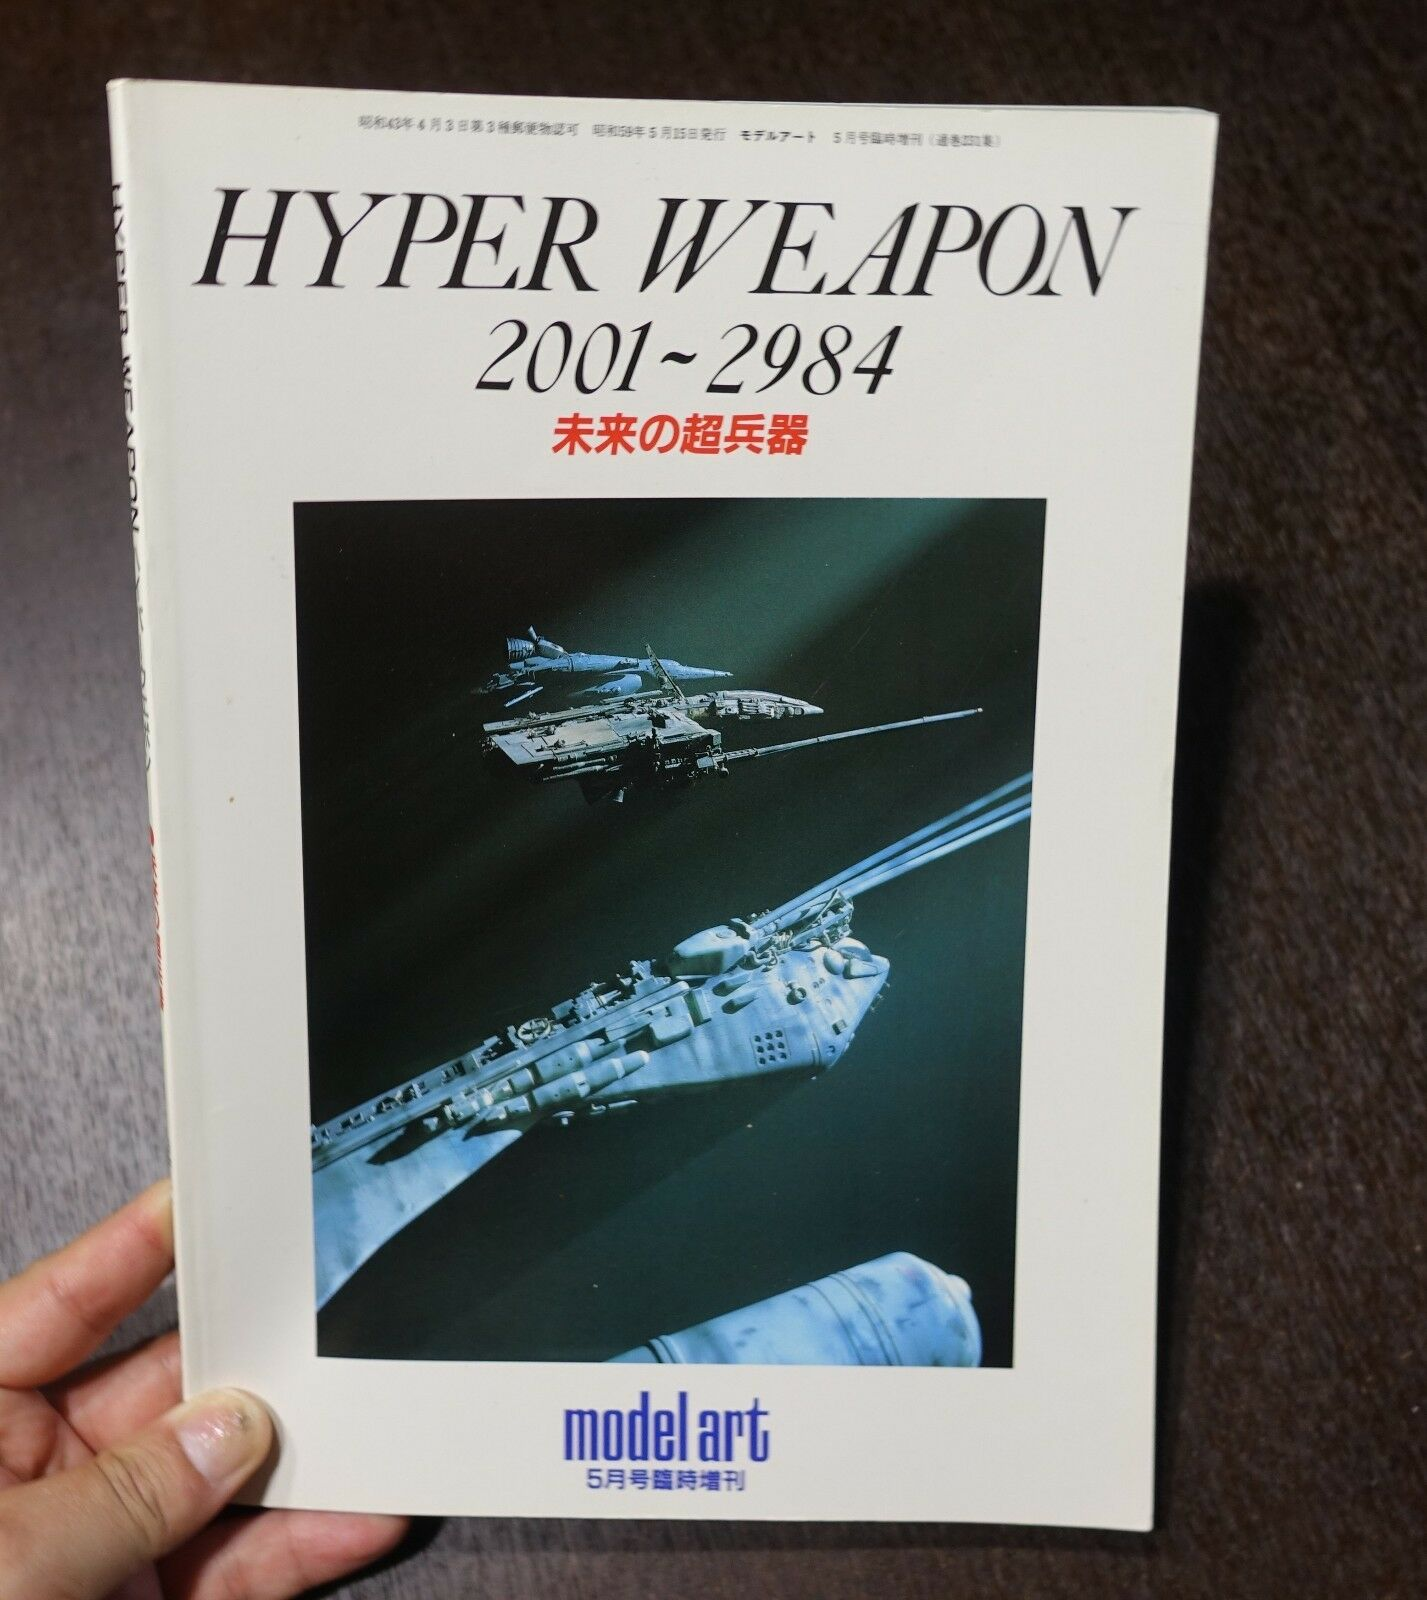 MAKOBAYASI HYPER WEAPON 2001, [2984 BOok] konst 1984